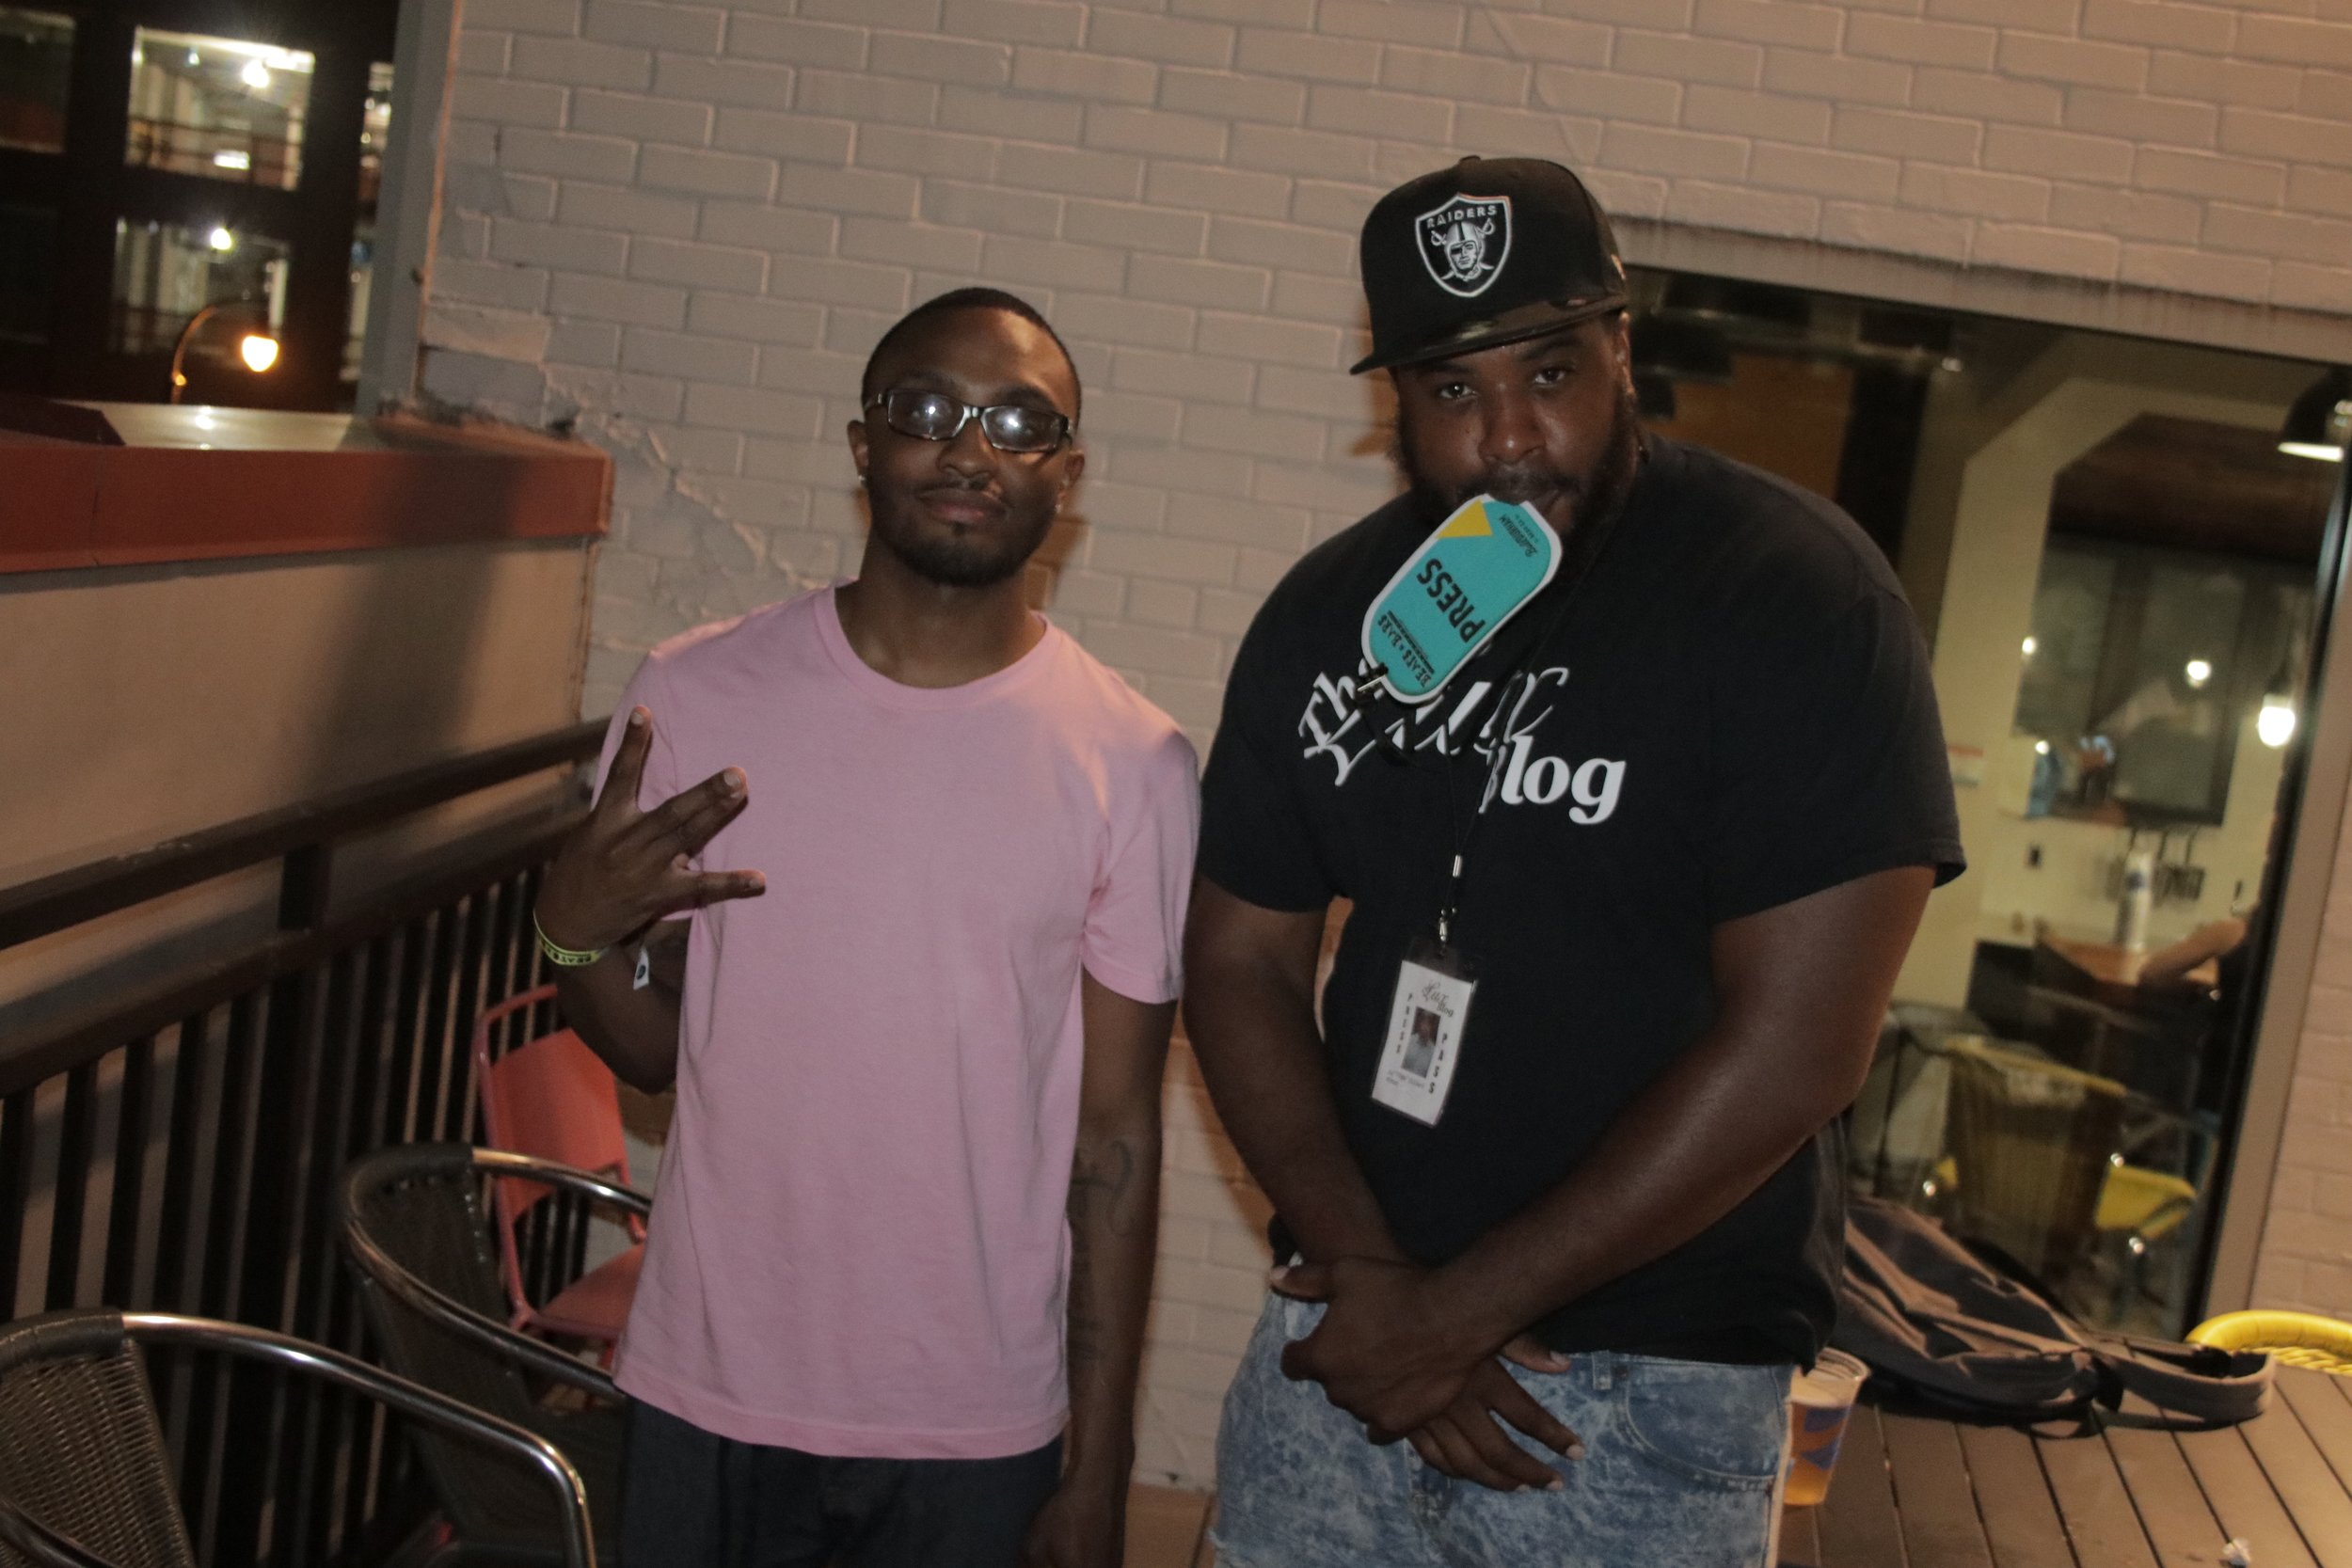 Pictured: @Gomillz704 & V8ga at the AU Rooftop Event